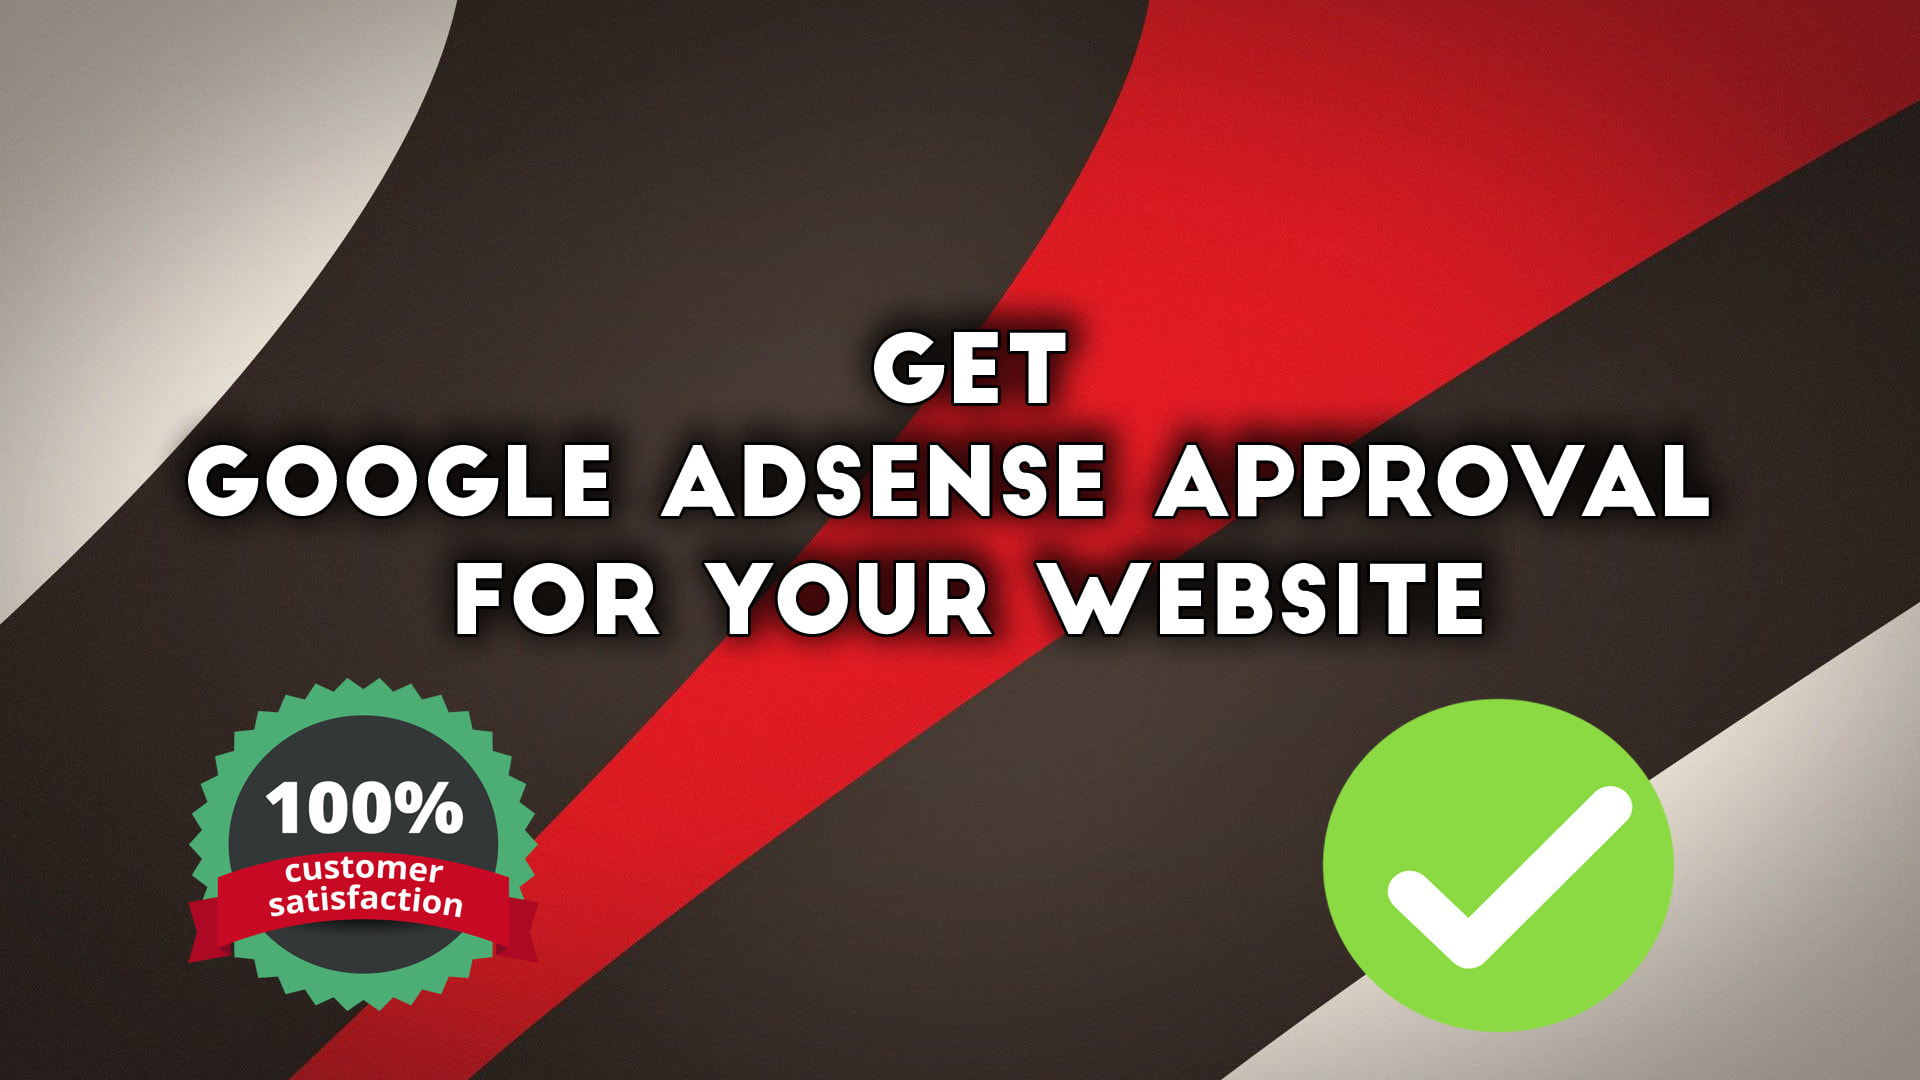 I will write articles for google adsense approval